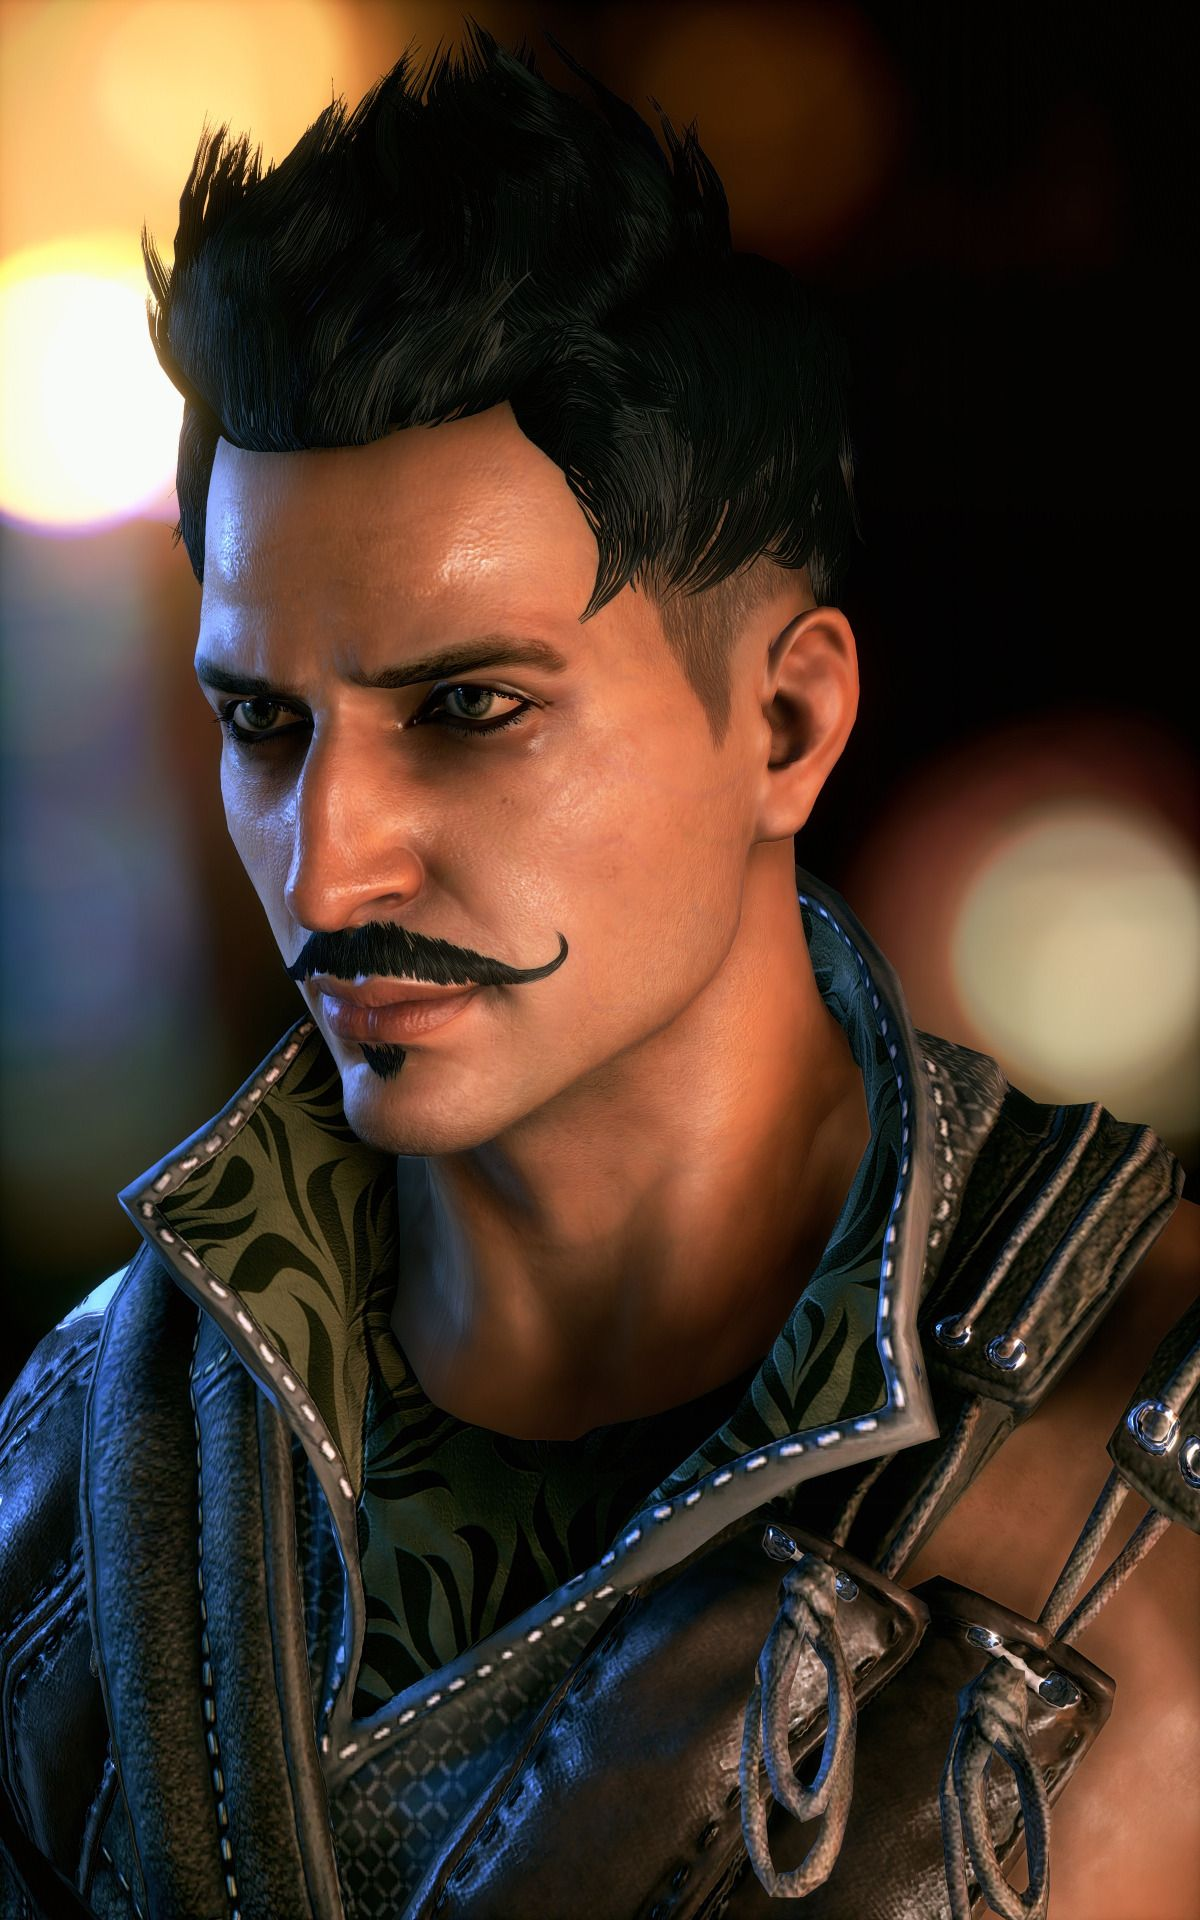 Dorian Pavus maybe a videogame character but the things I would do to this man if he were real.